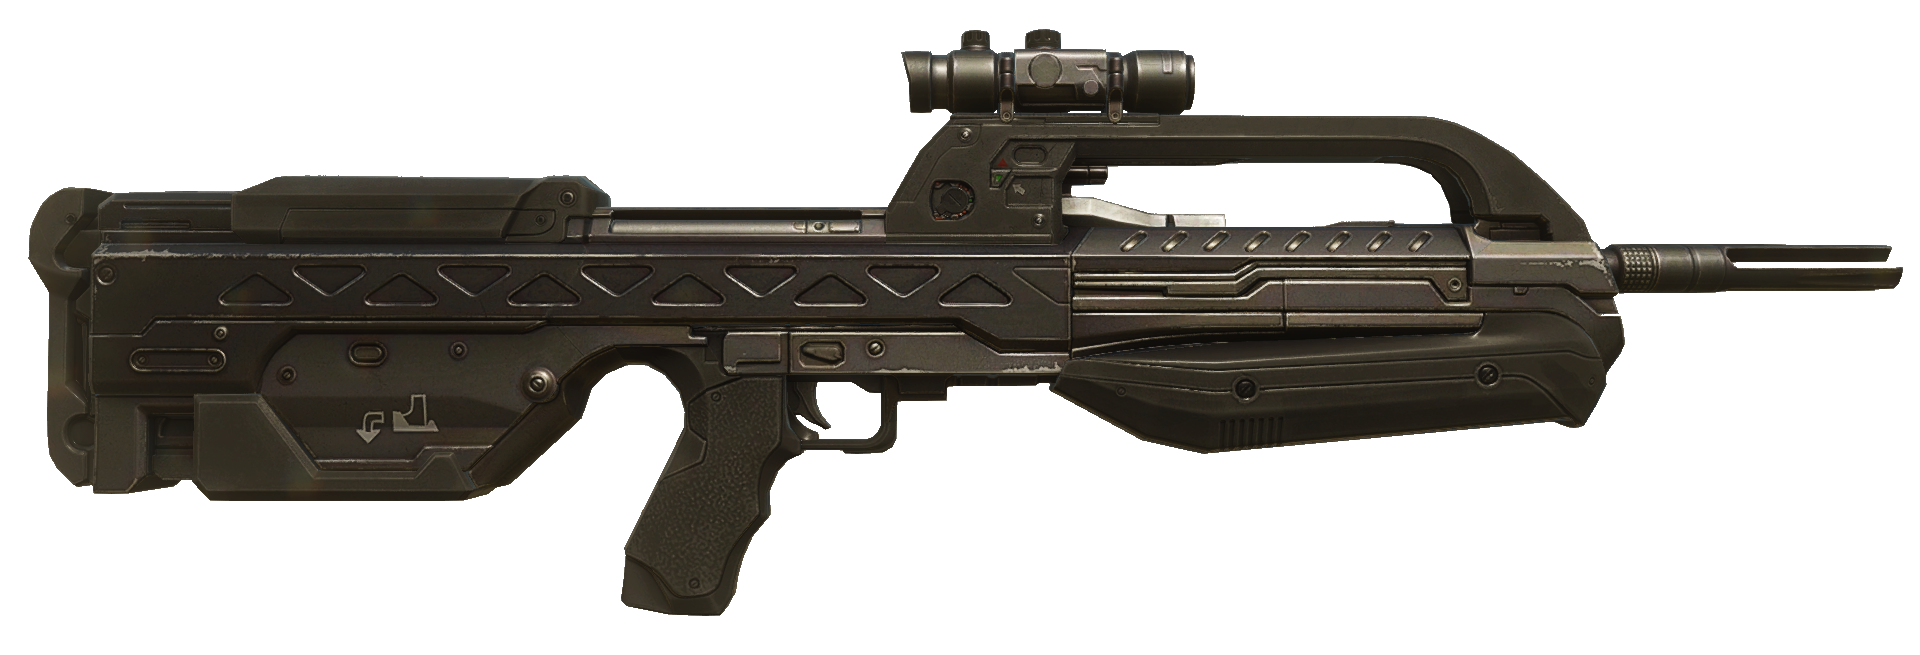 H5G_Render_BR55_Service_Rifle.png